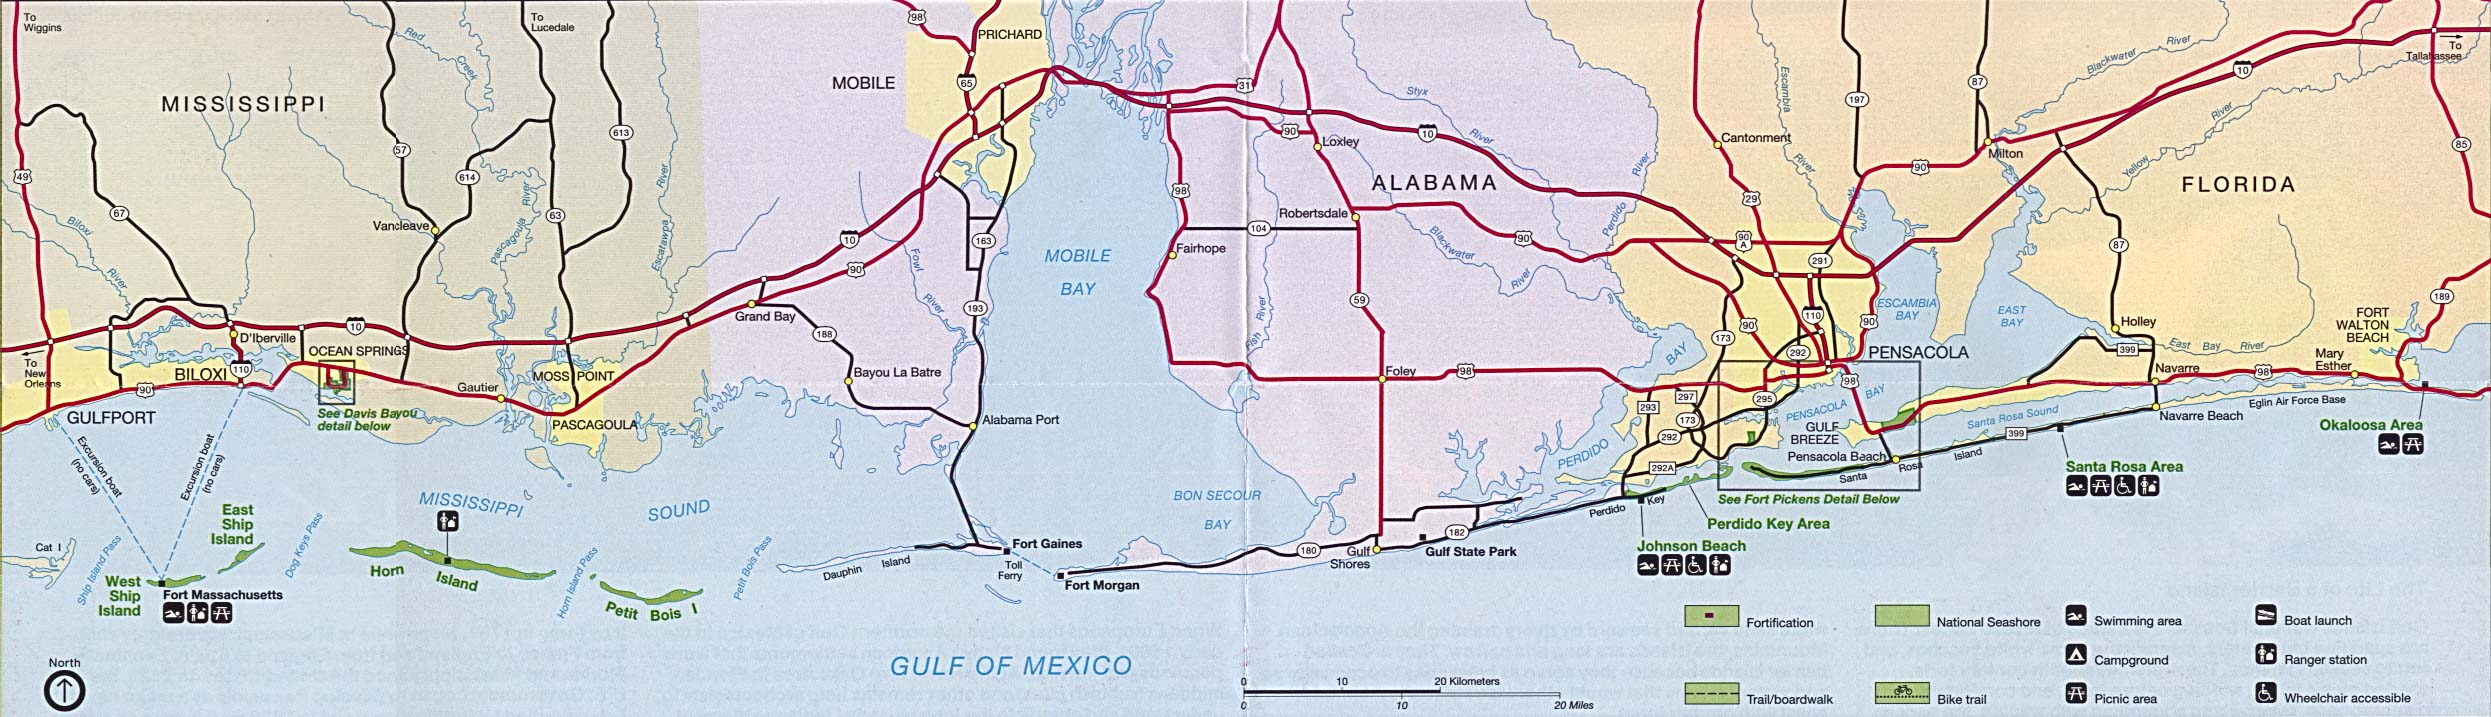 Maps of United States National Parks, Monuments and Historic Sites Gulf of Mexico [Mississippi / Alabama / Florida] (Area Features) 1994 (351K)